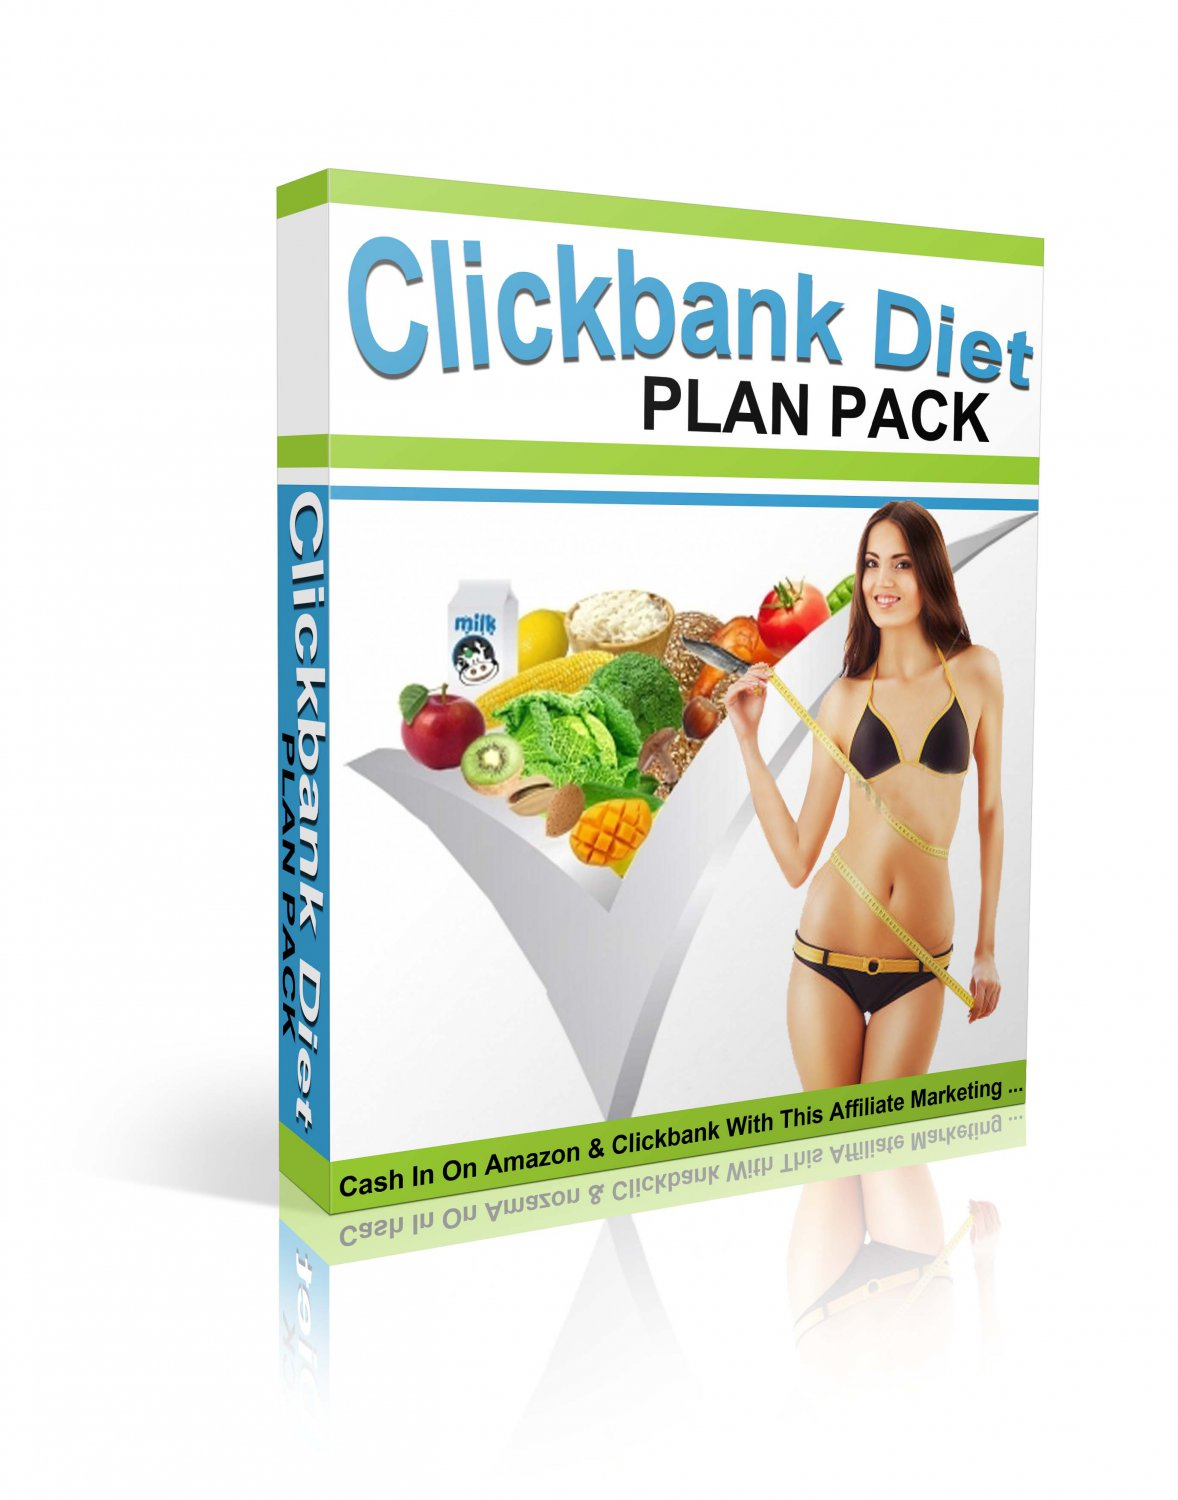 New Clickbank Diet Plans Pack | E-Book Download